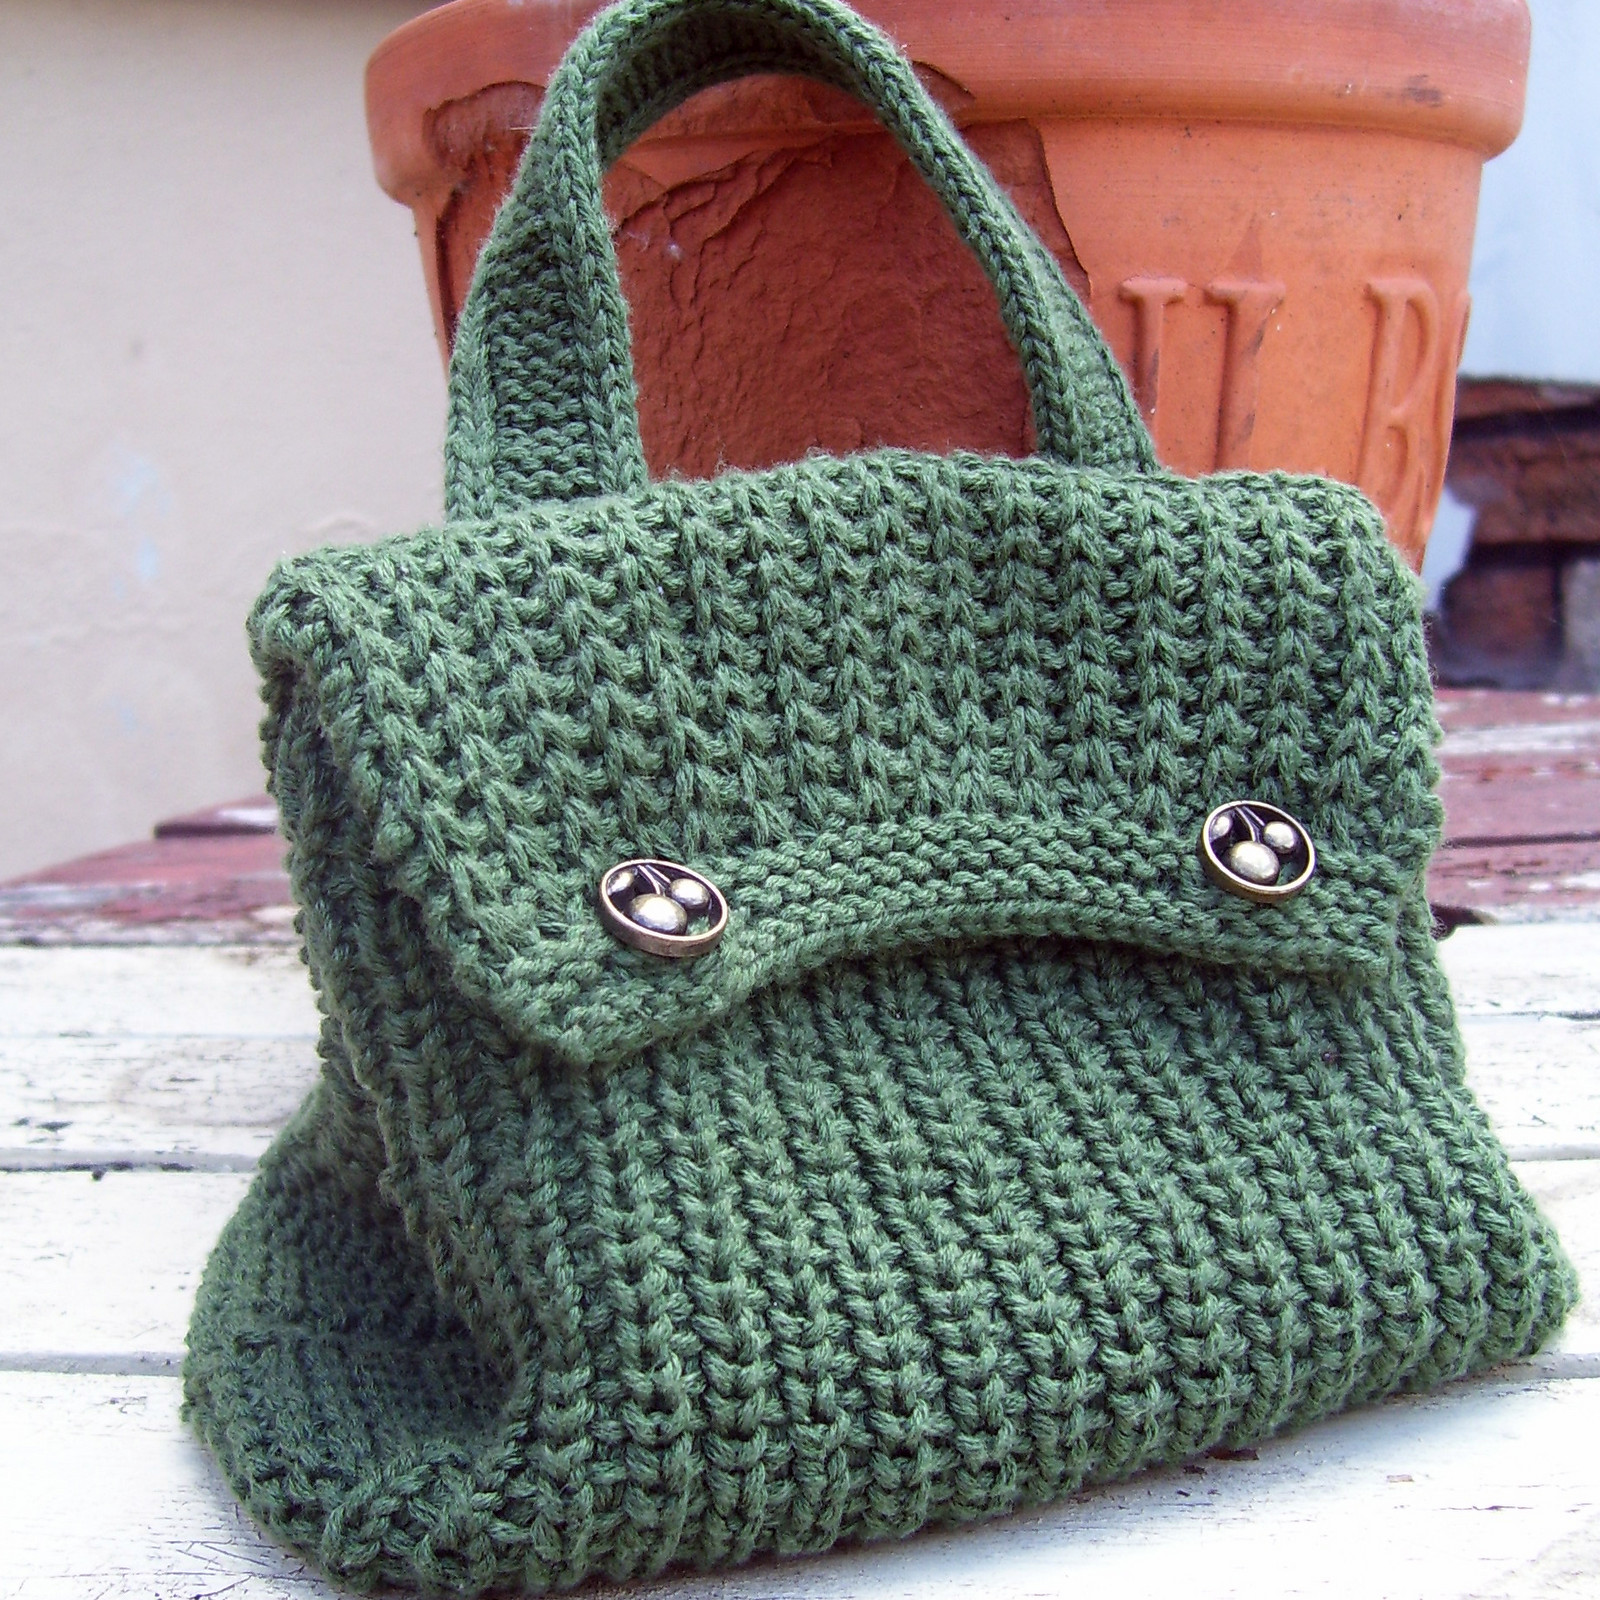 CROCHETED FREE HANDLE KNITTED PATTERN PURSE Crochet and